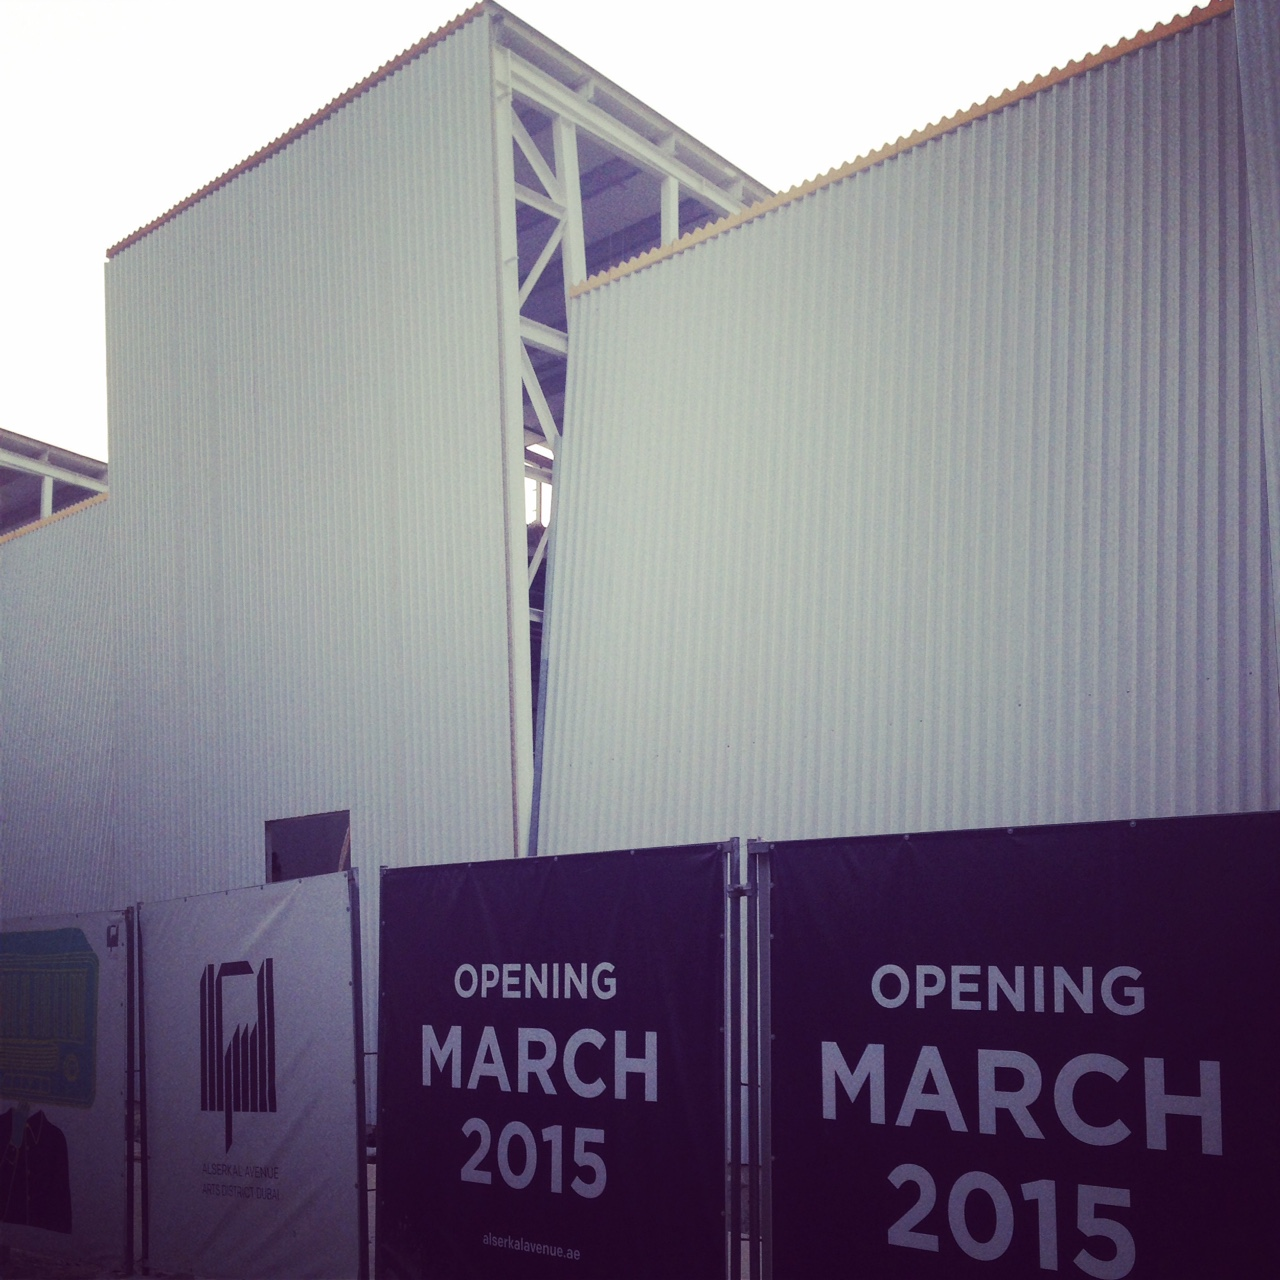 Banners announcing the opening of the Alserkal Avenue expansion in a couple of months' time. With the Sharjah Biennal, Dubai Art, Sikka and Dubai Design Days all kicking off in the same month, March 2015 is shaping up to be a busy month for the UAE art crowd.